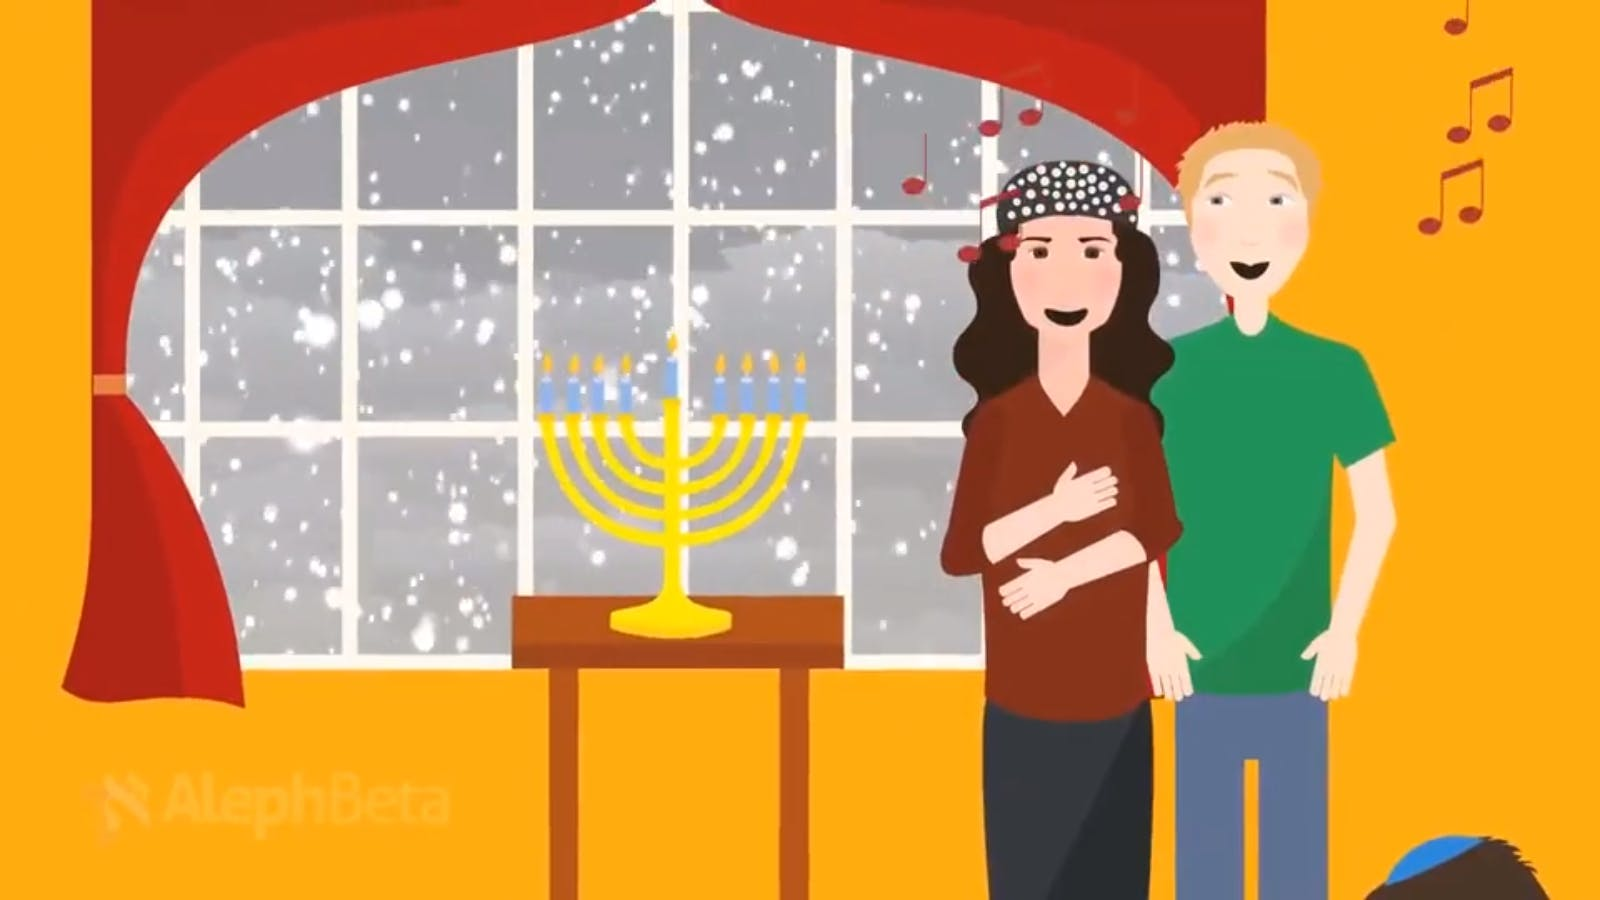 What is Hanukkah really all about